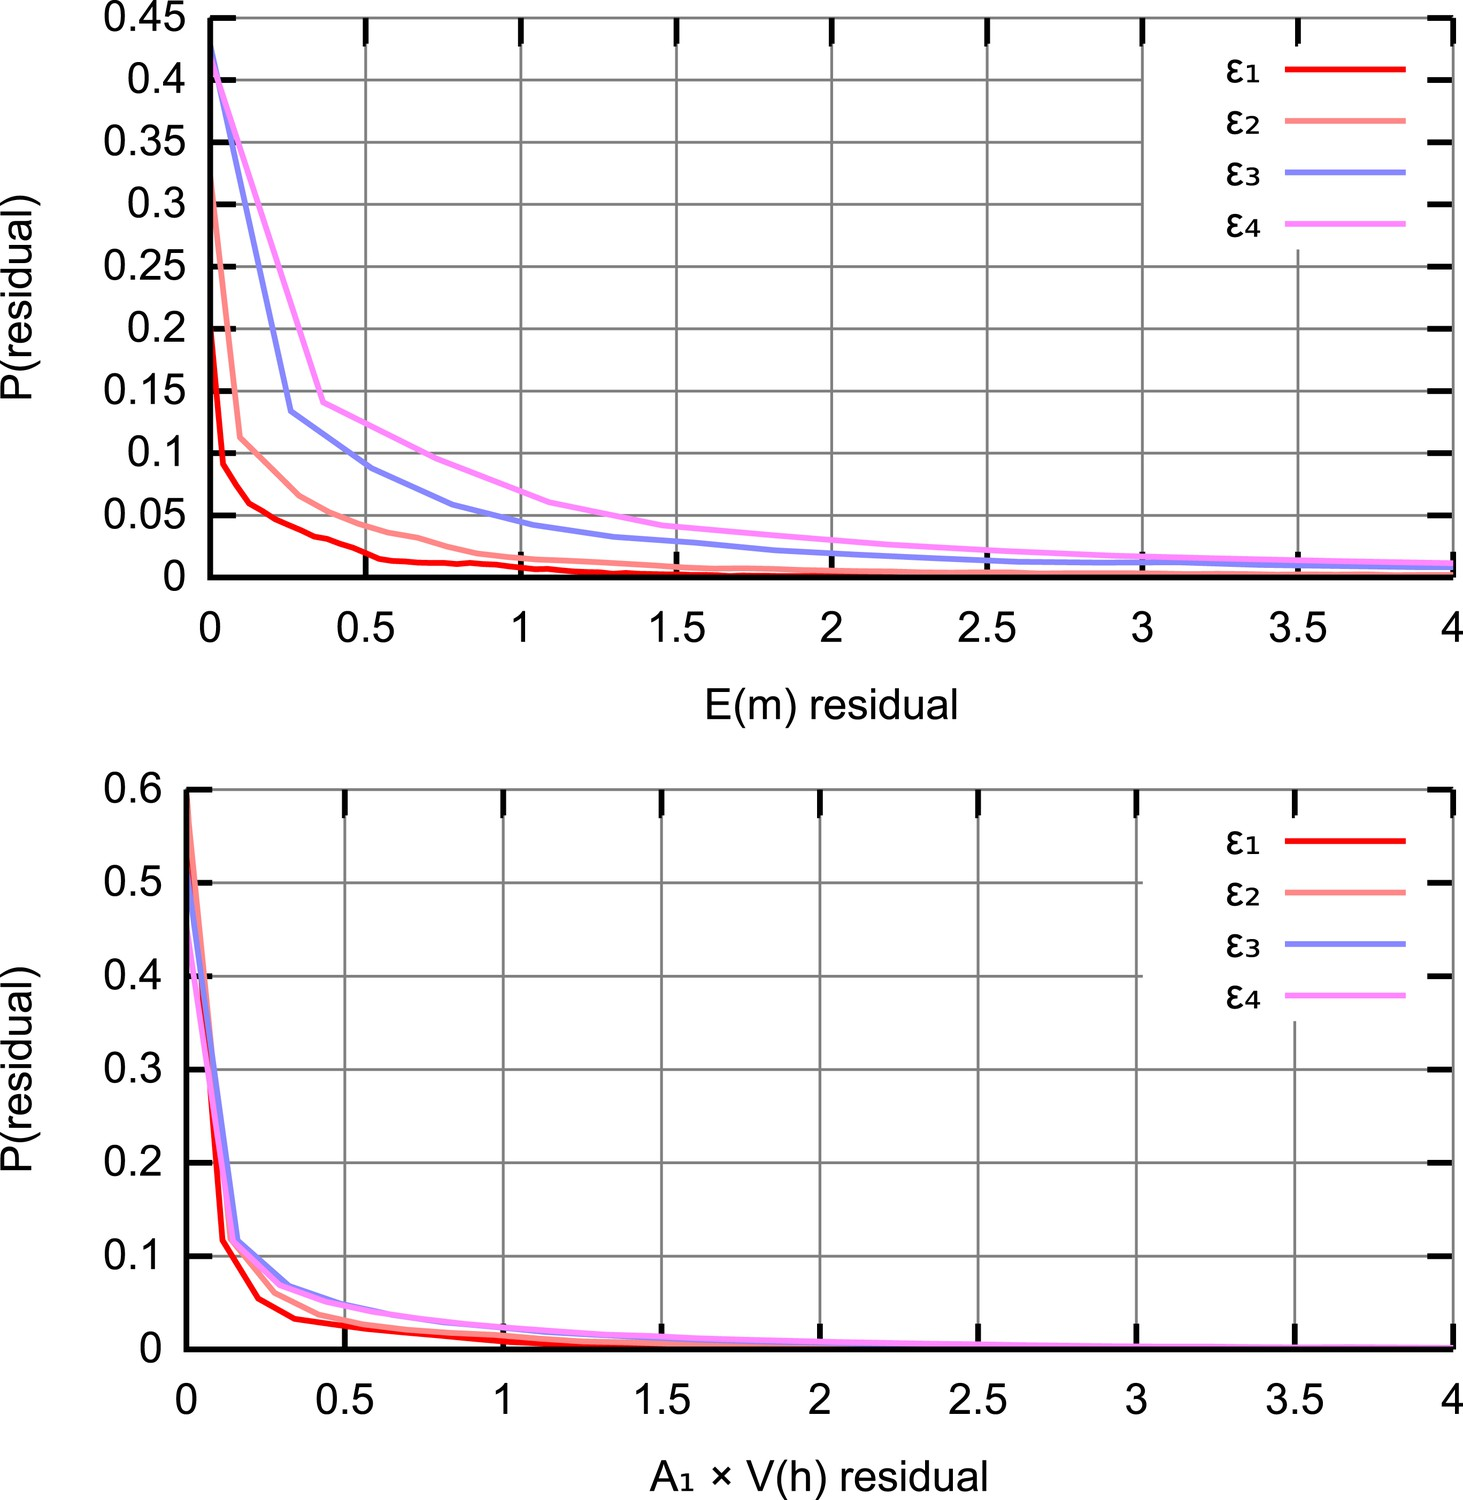 Stochastic Modelling Bayesian Inference And New In Vivo Four Diagrams A B C D Representing Stages Of Stroke Residual Distributions At Different Abc Thresholds